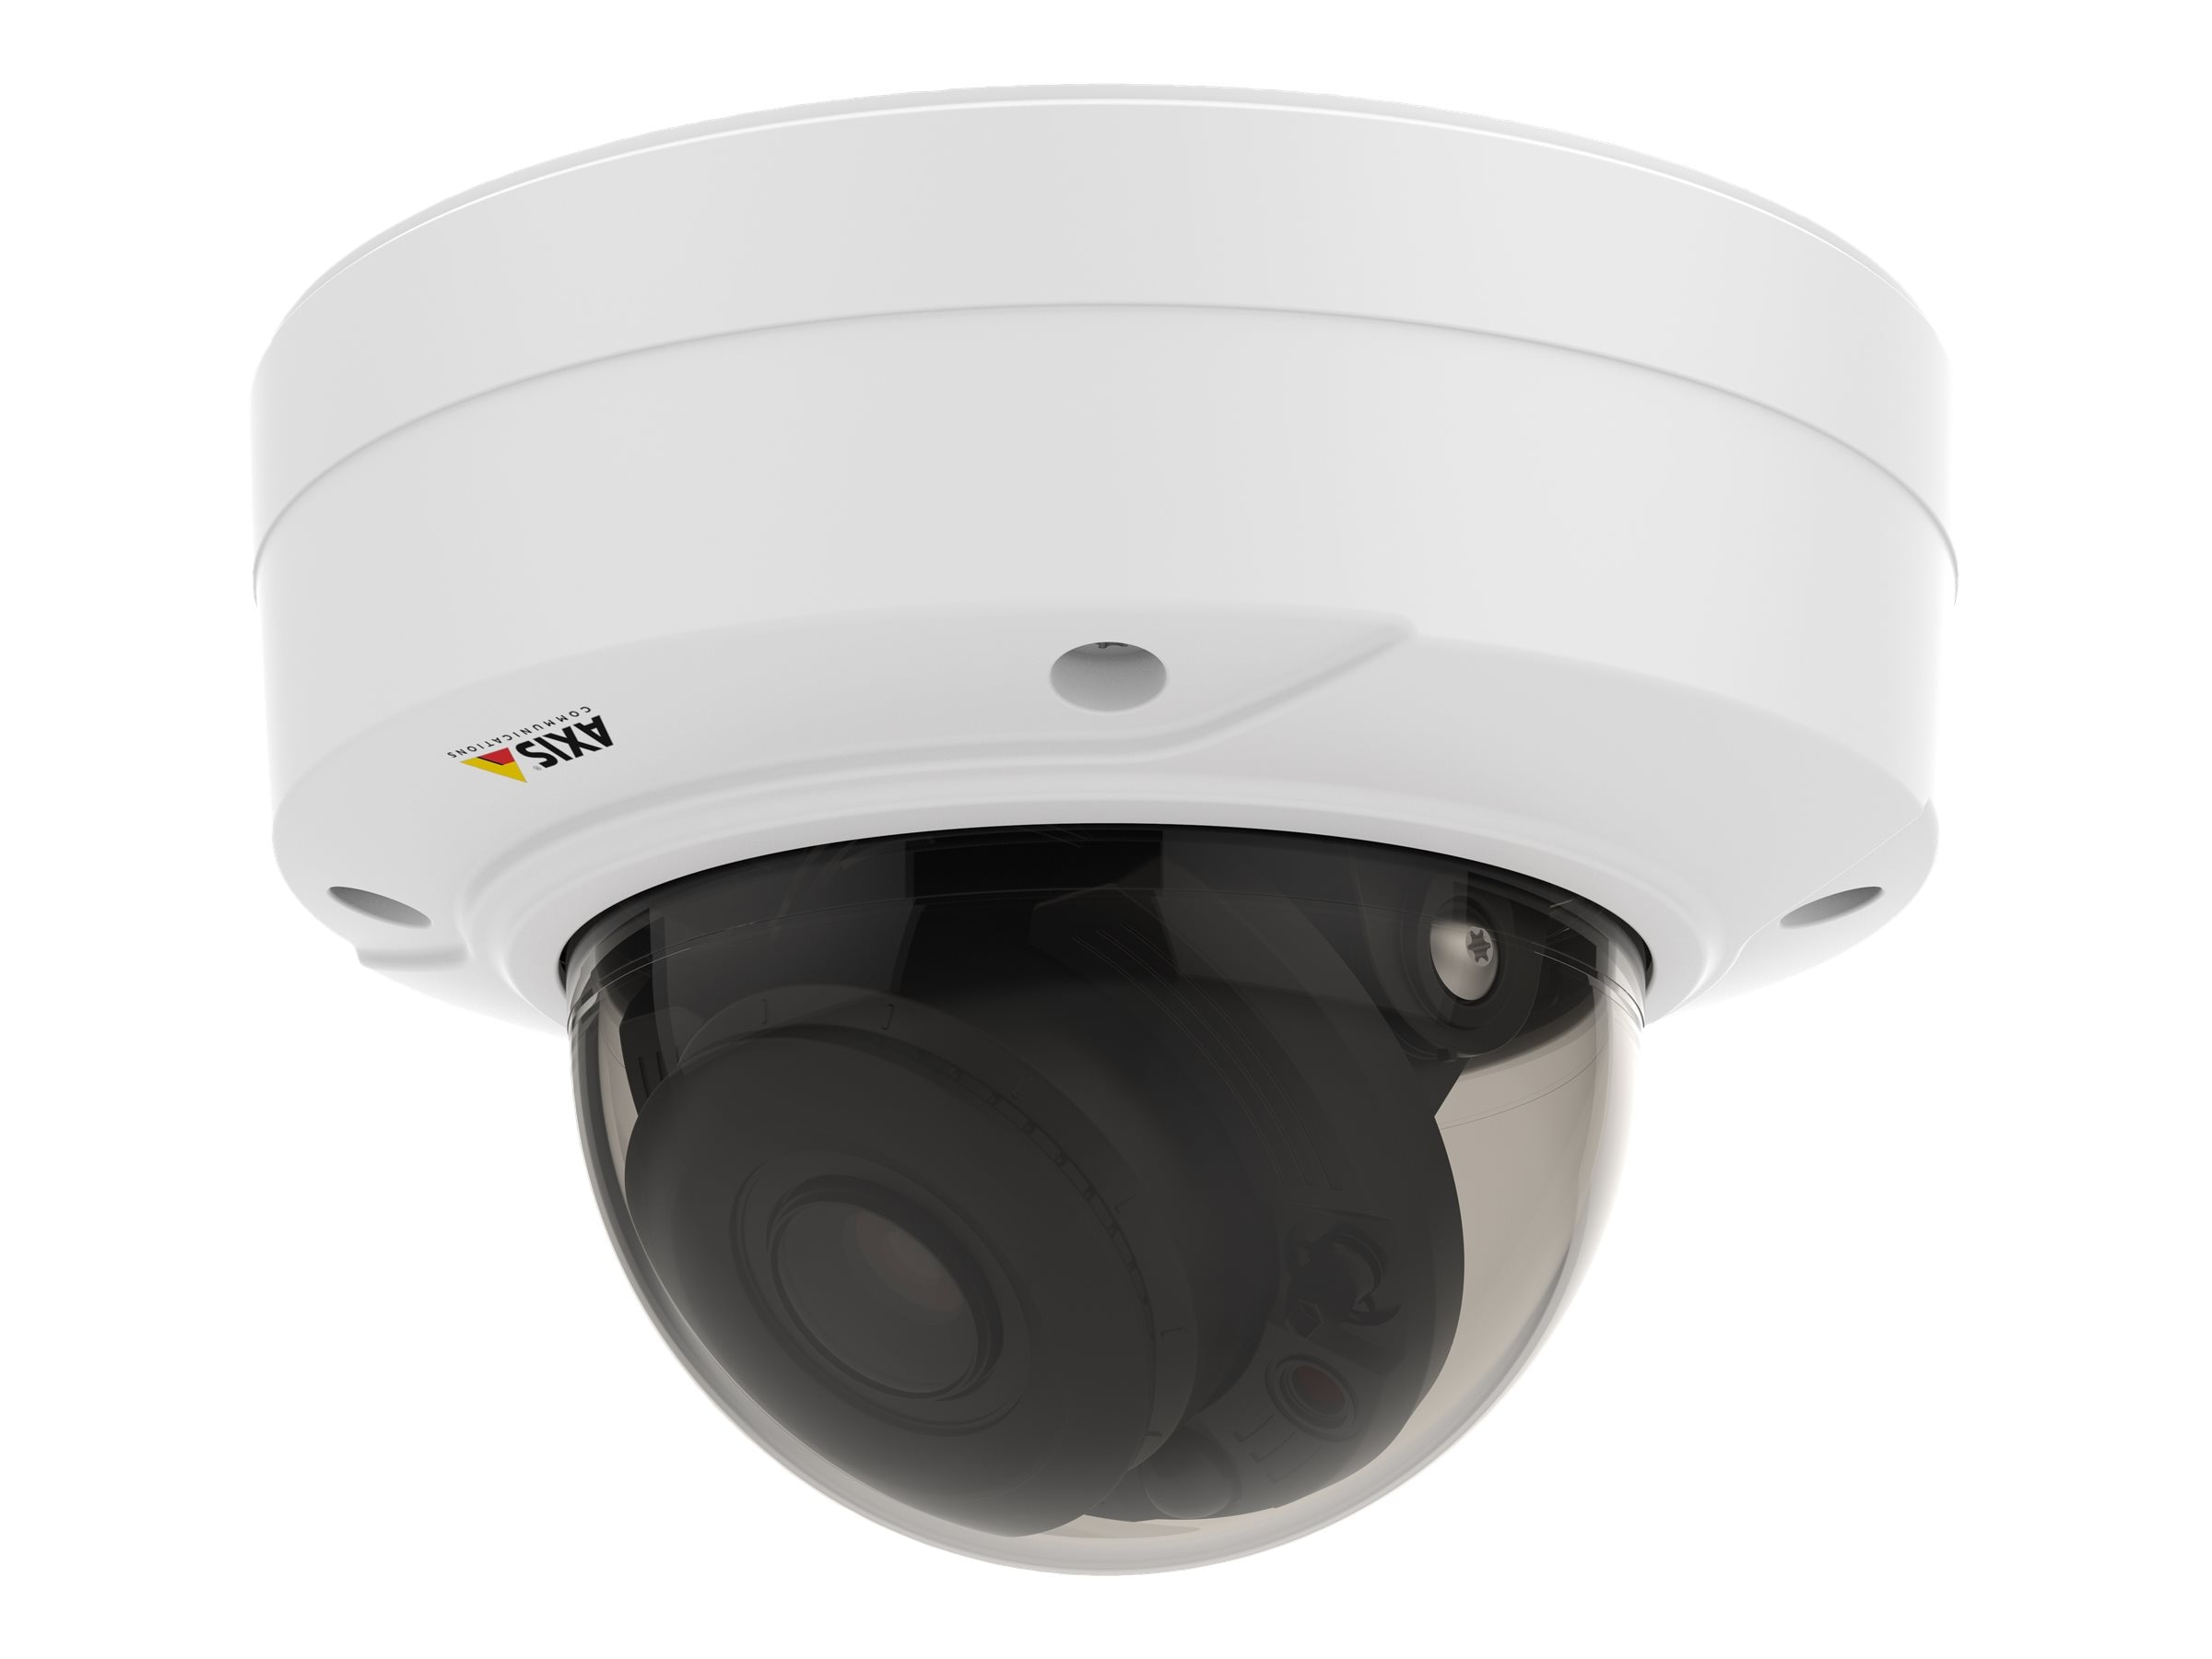 Axis P3225-LV 1080p Day Night Fixed Dome Camera, 0761-001, 23410951, Cameras - Security